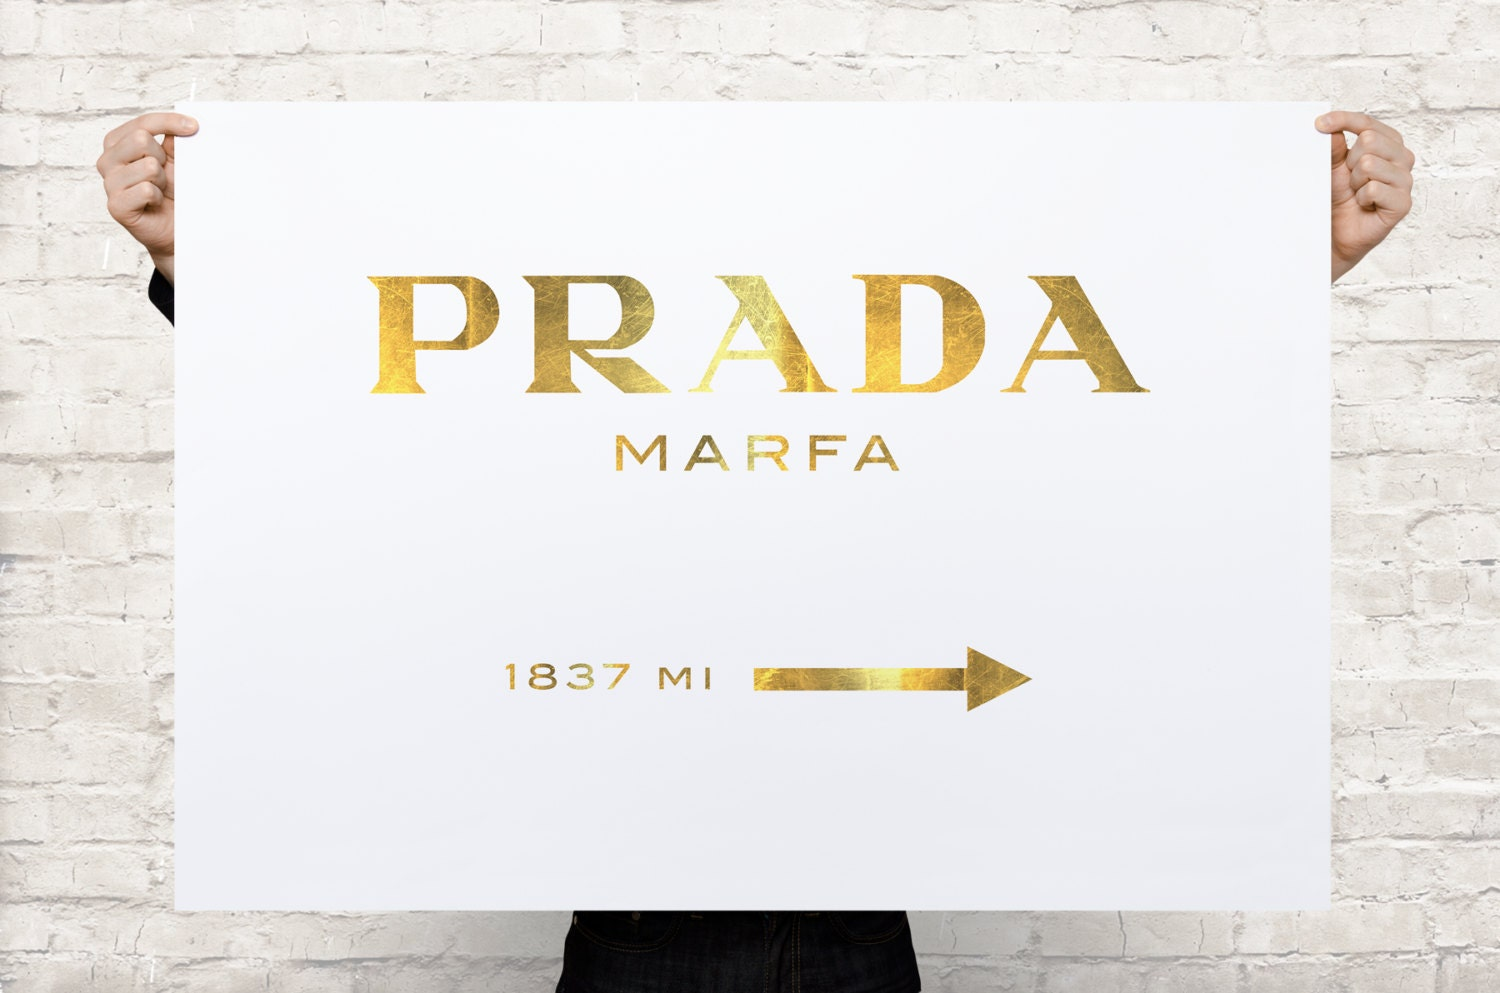 prada marfa canvas gossip girl gold oversized canvas by coolposter. Black Bedroom Furniture Sets. Home Design Ideas